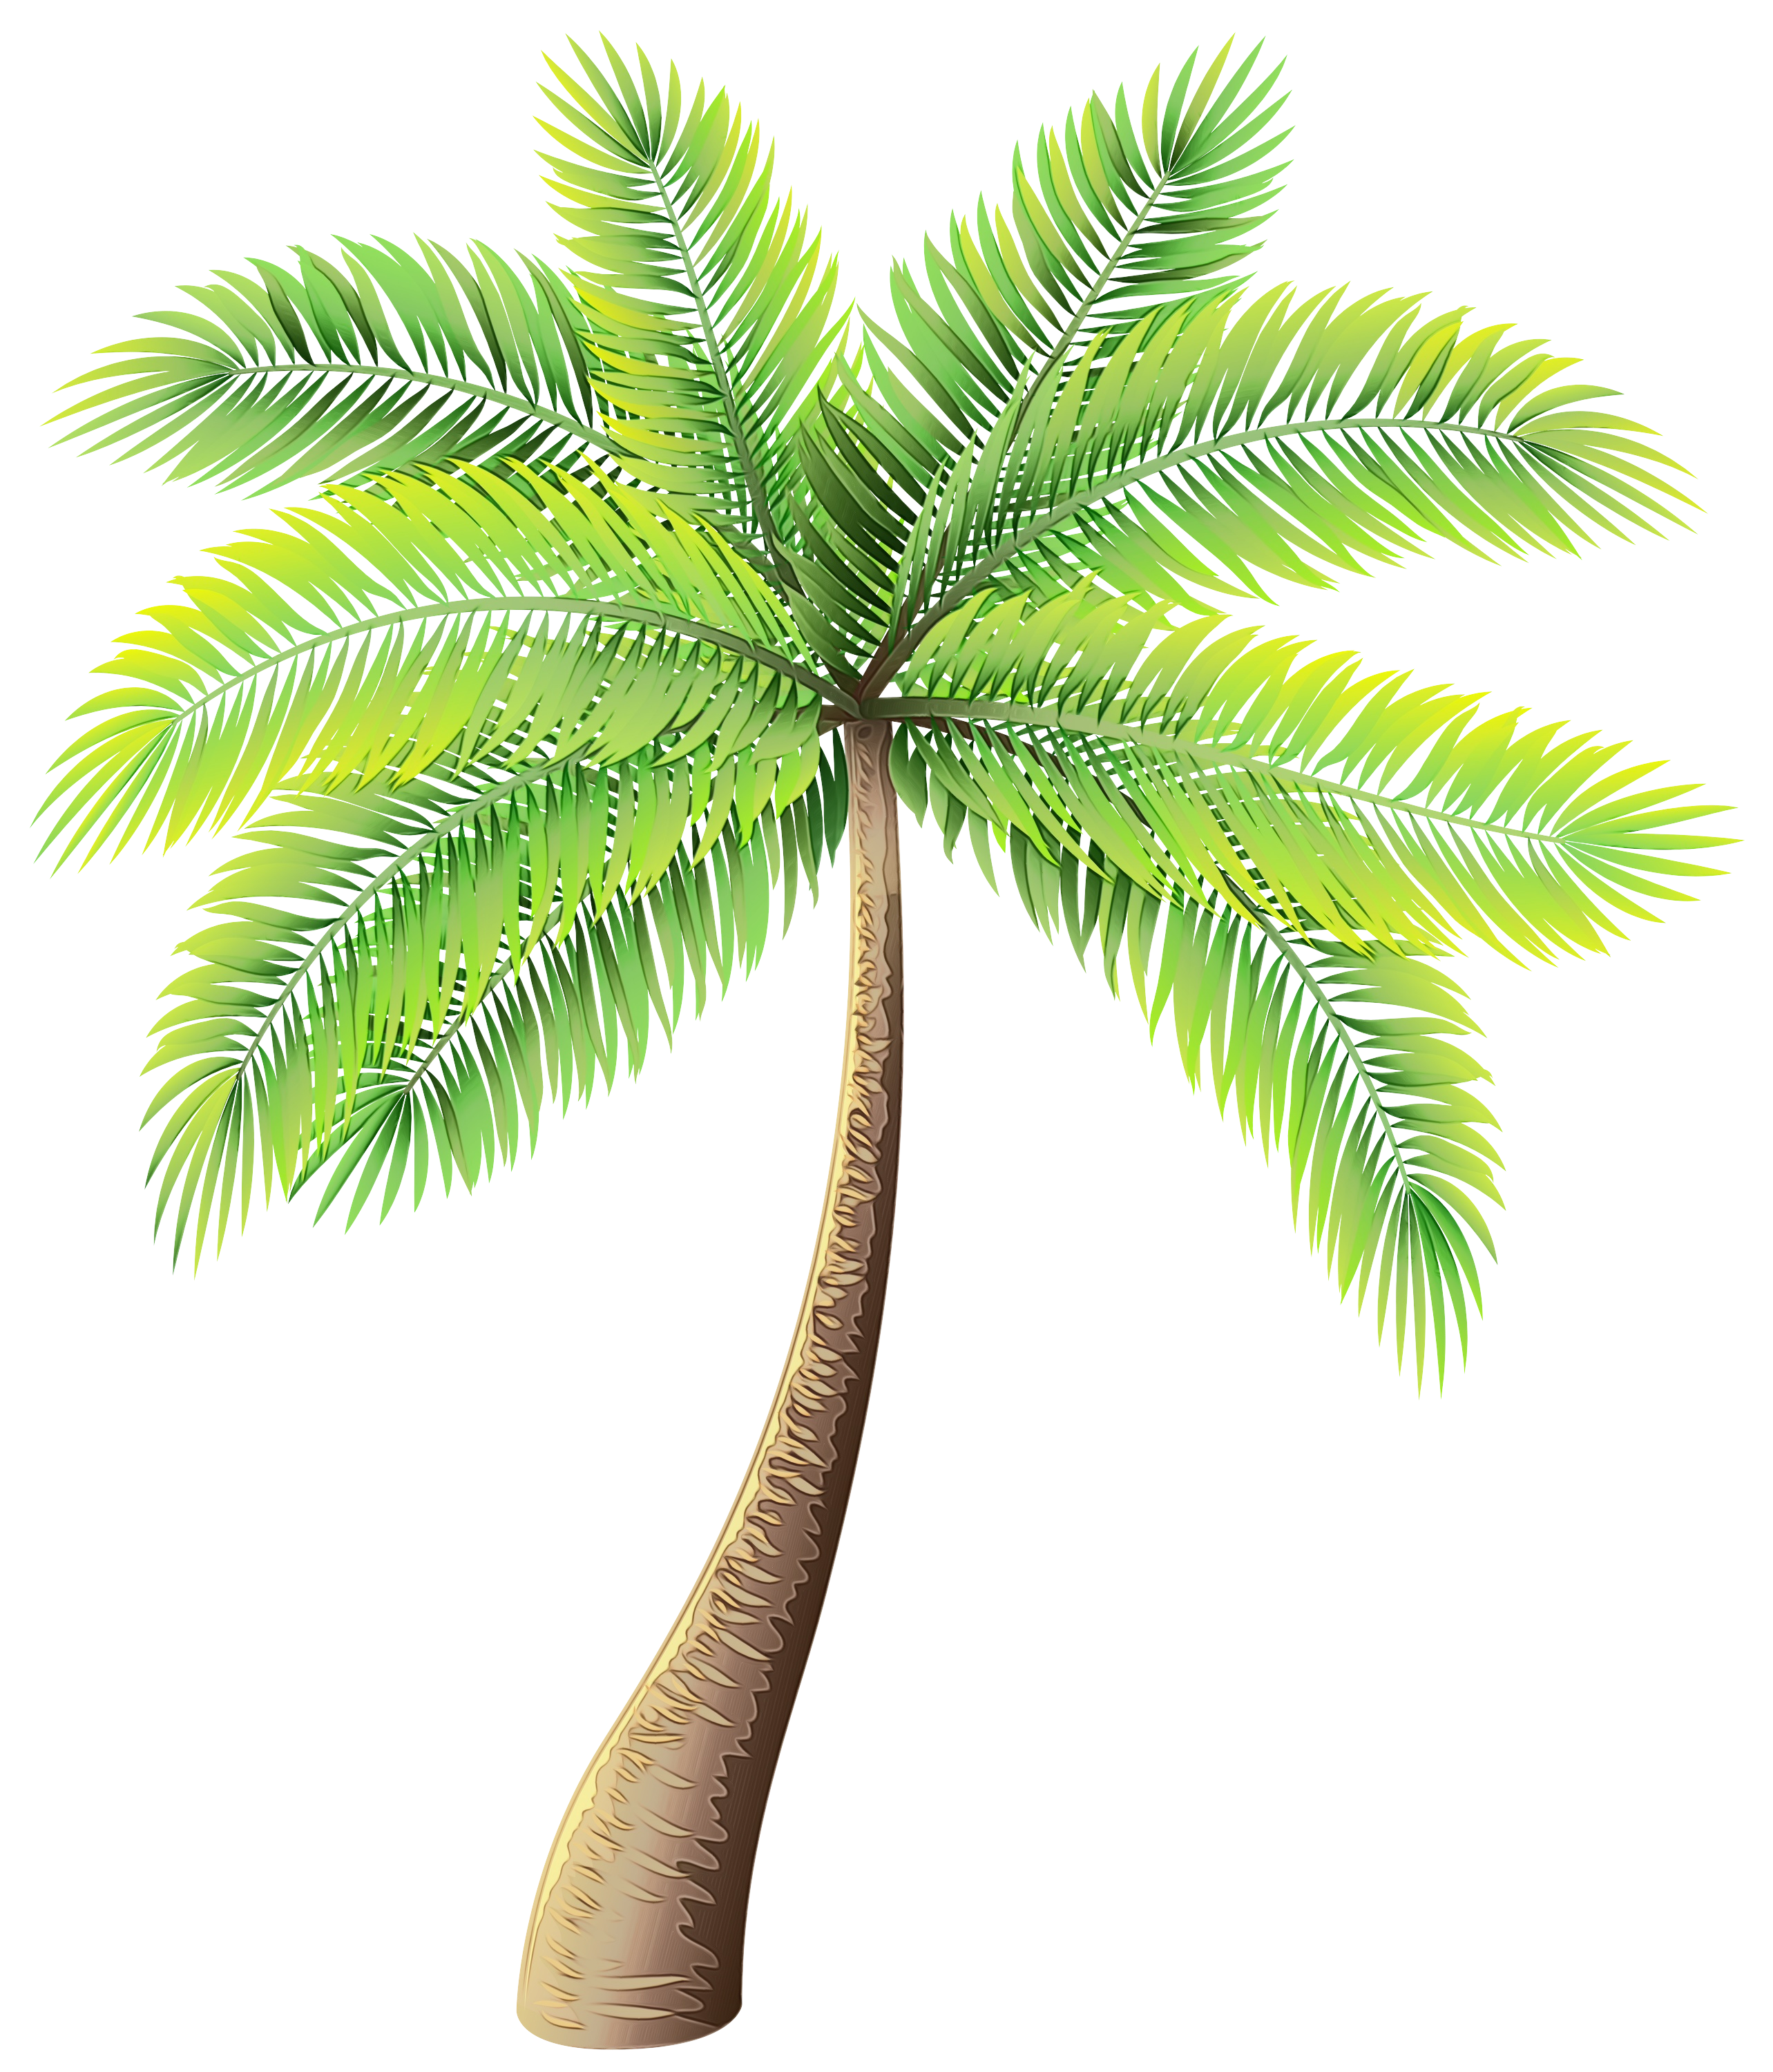 Clip art Palm trees Portable Network Graphics Image Vector.